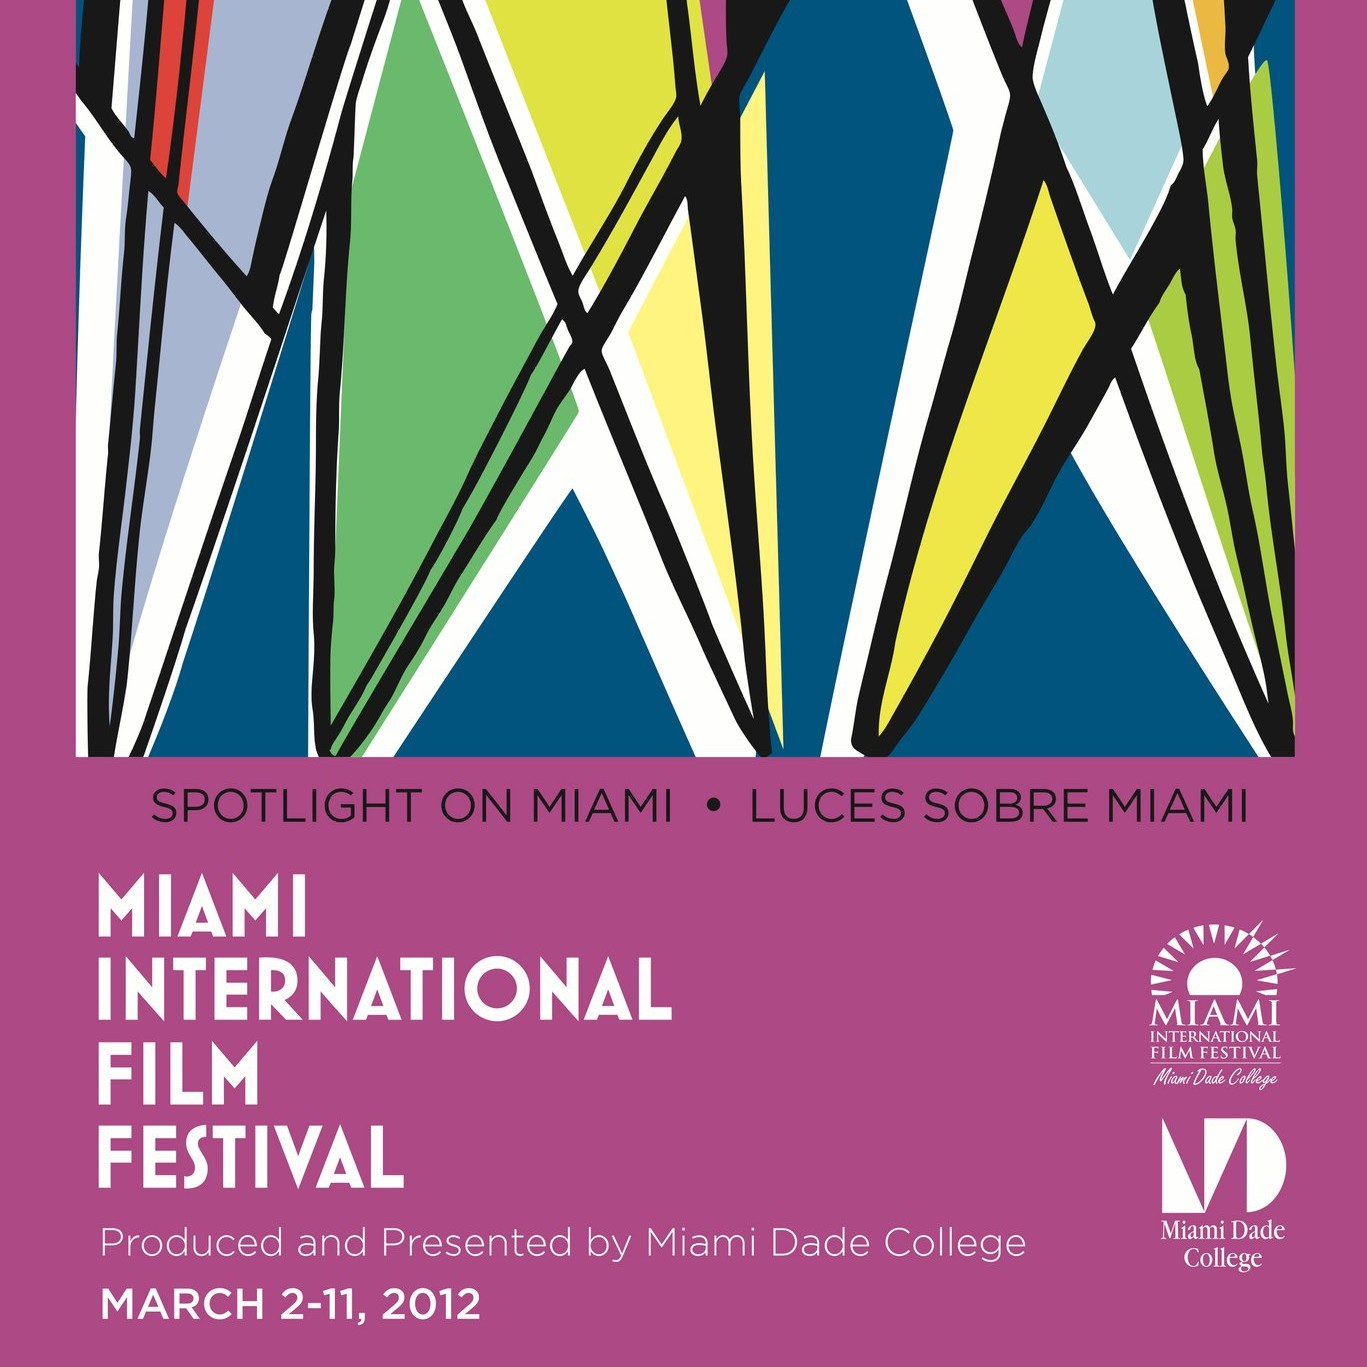 Miami International Film Festival Announces Lineup